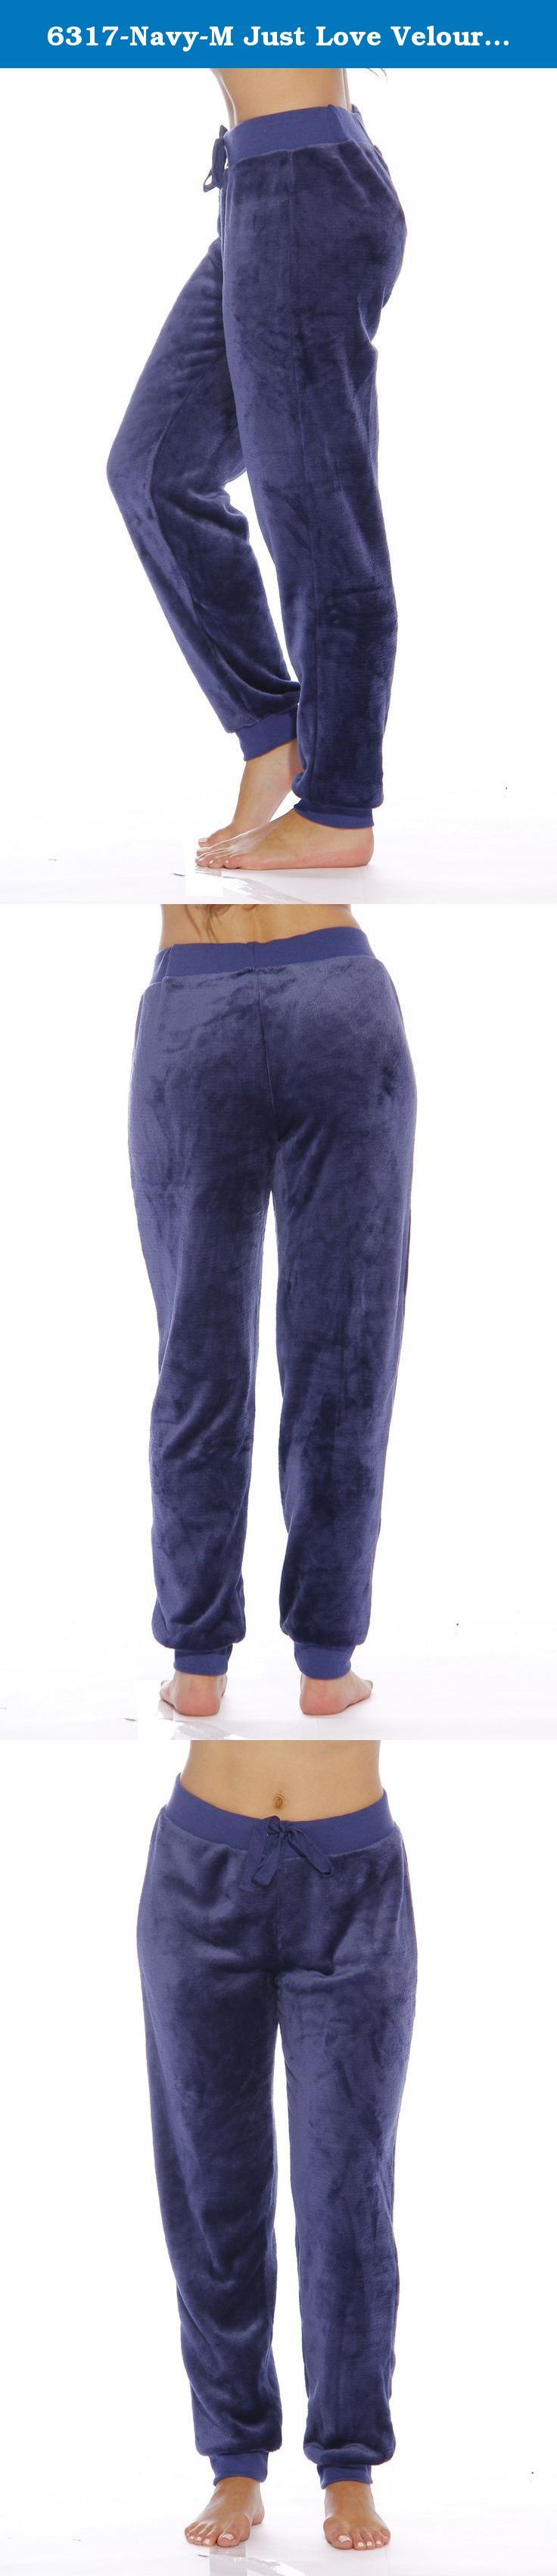 6317-Navy-M Just Love Velour Pajama Pants / Joggers for Women. THE LOUNGE PANTS YOU WON'T WANT TO TAKE OFF Oh So Comfy Take lounging to the very extremes of comfort with Just Love's velour jogger pants! We've pulled out all the stops to make these the comfiest lounge pants you'll ever slip into. You'll love the feel of the ultra-soft velour as it brushes up on your skin, and relish the roomy fit that allows you to comfortably move about without any bulk. Whether you're watching some telly...